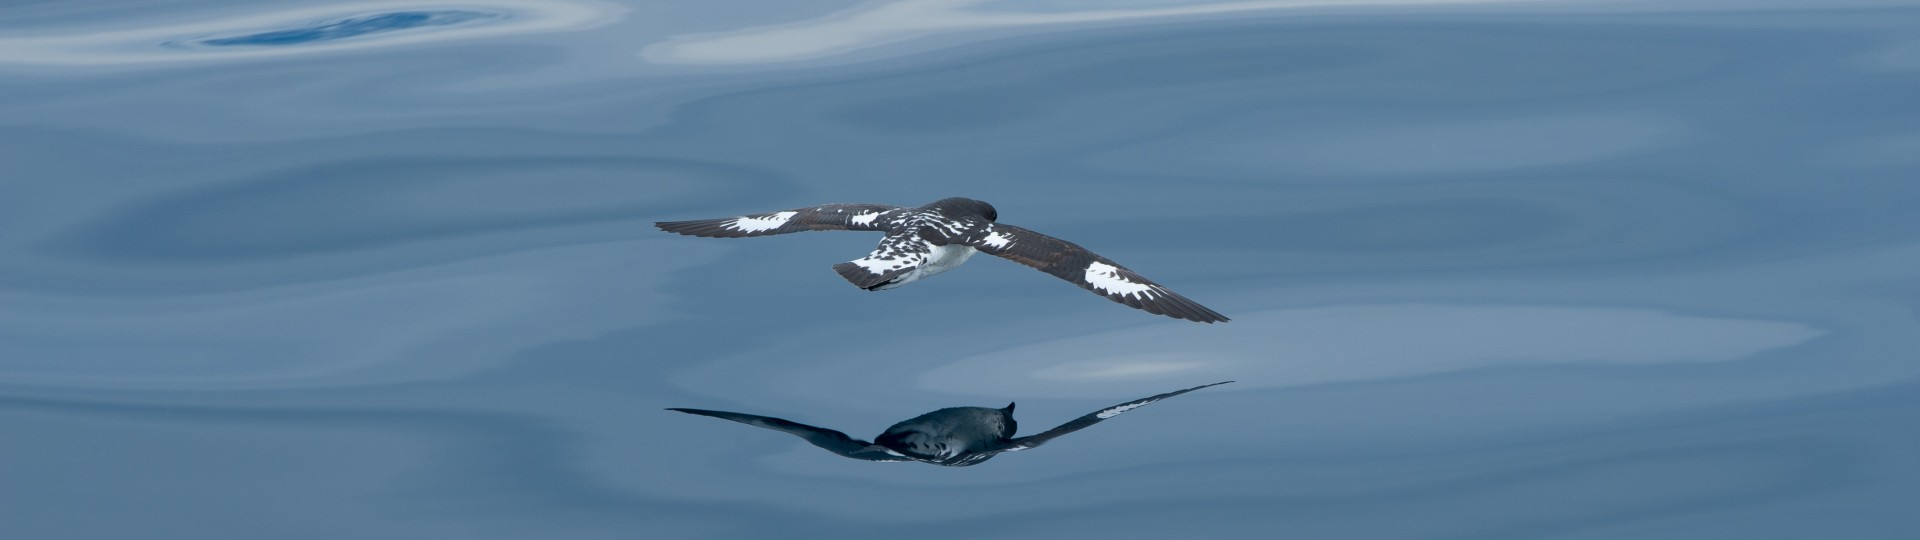 Marine bird Cape Petrel spotted in Kaikoura, New Zealand